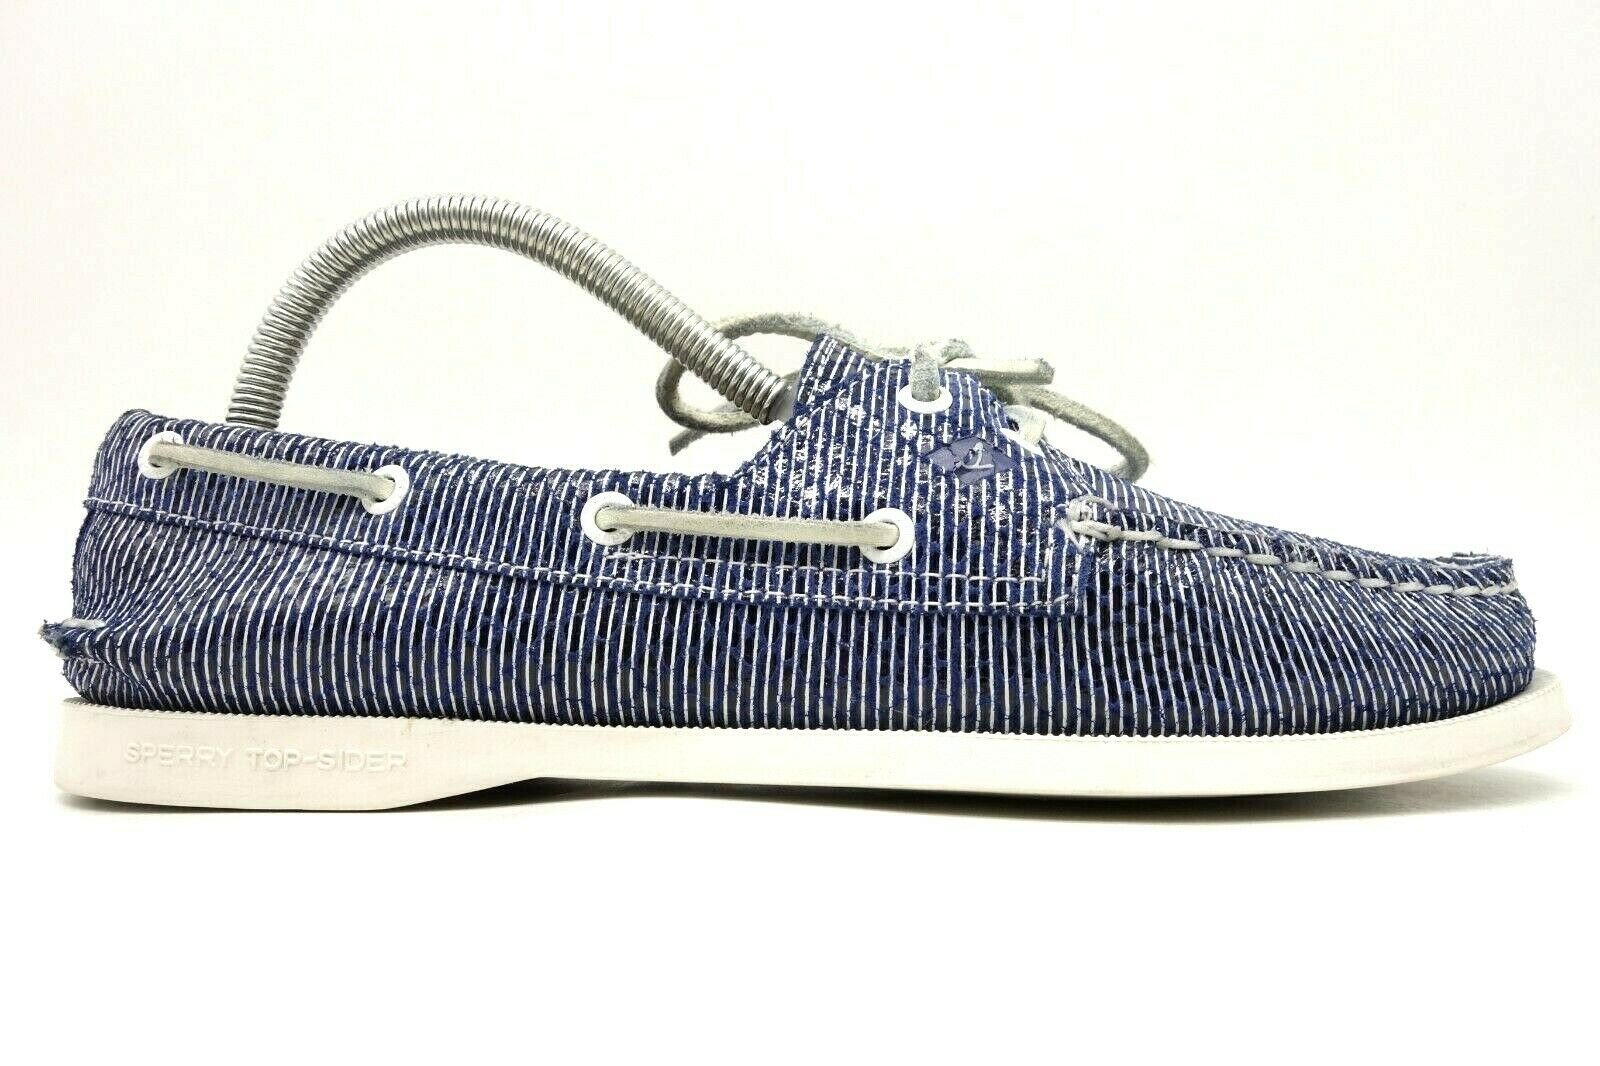 Sperry Top Sider Blue White Stripe Slip On Deck Boat Loafers Shoes Women's 8.5 M